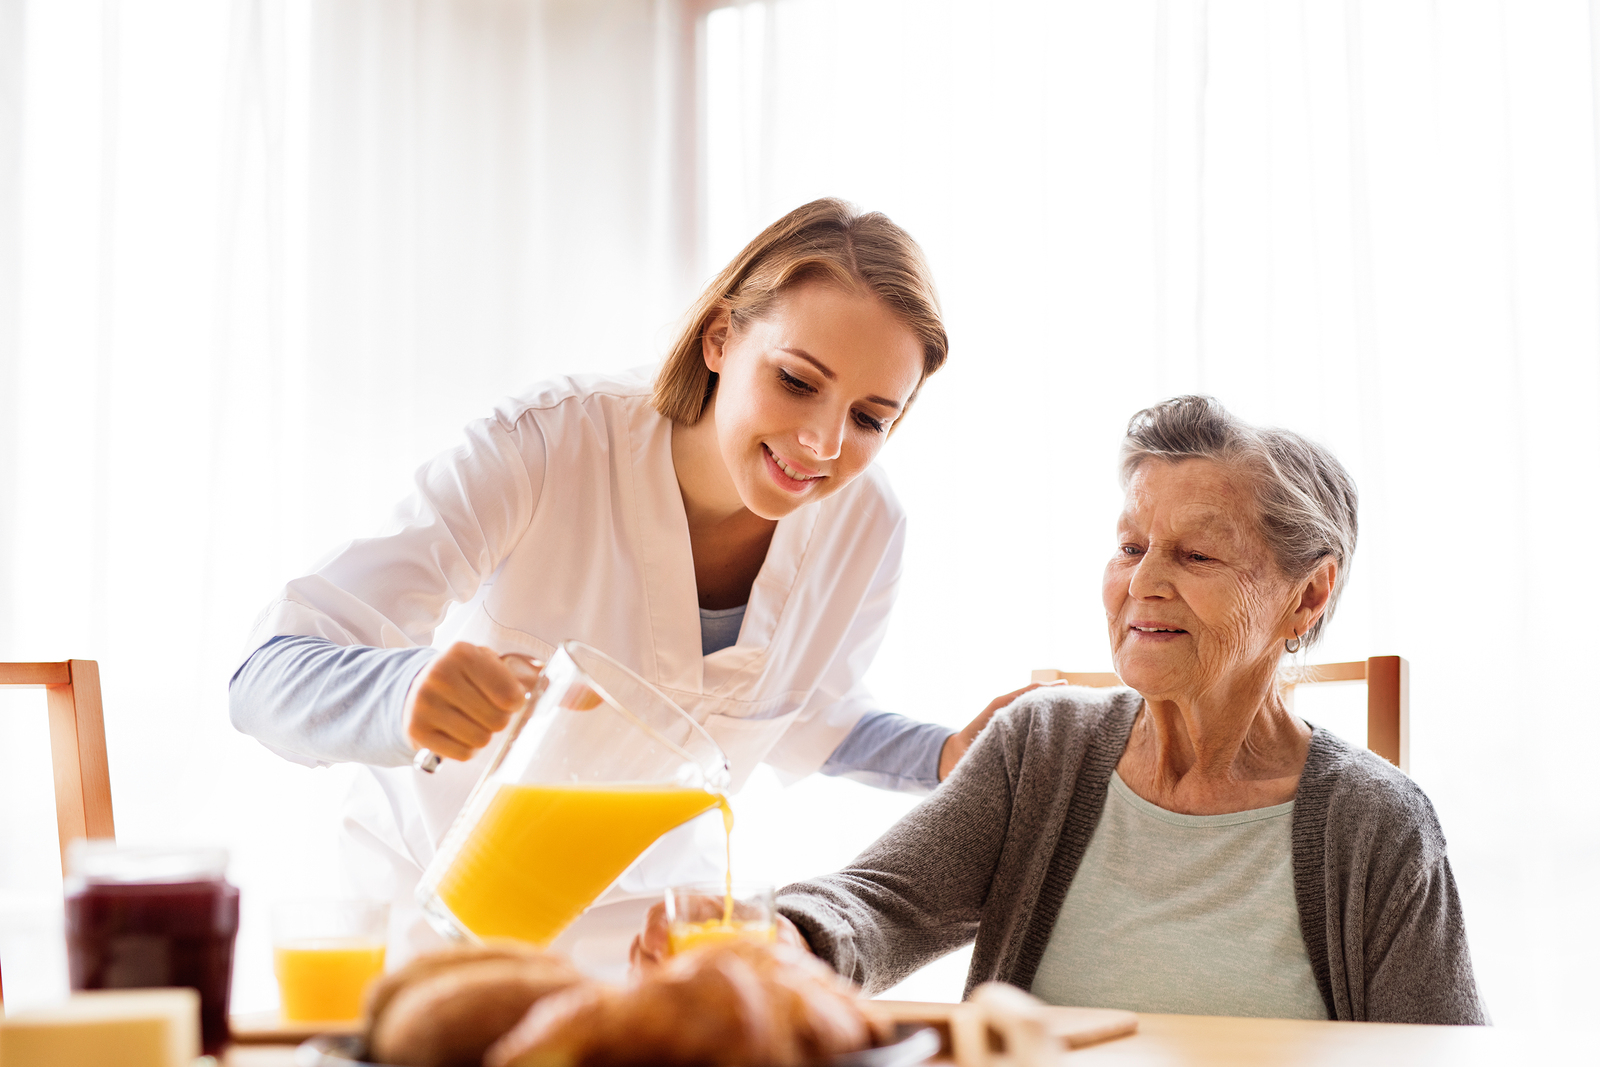 Elderly Care in Mt. Laurel NJ: When Does My Aging Parent Need Elderly Care Services?